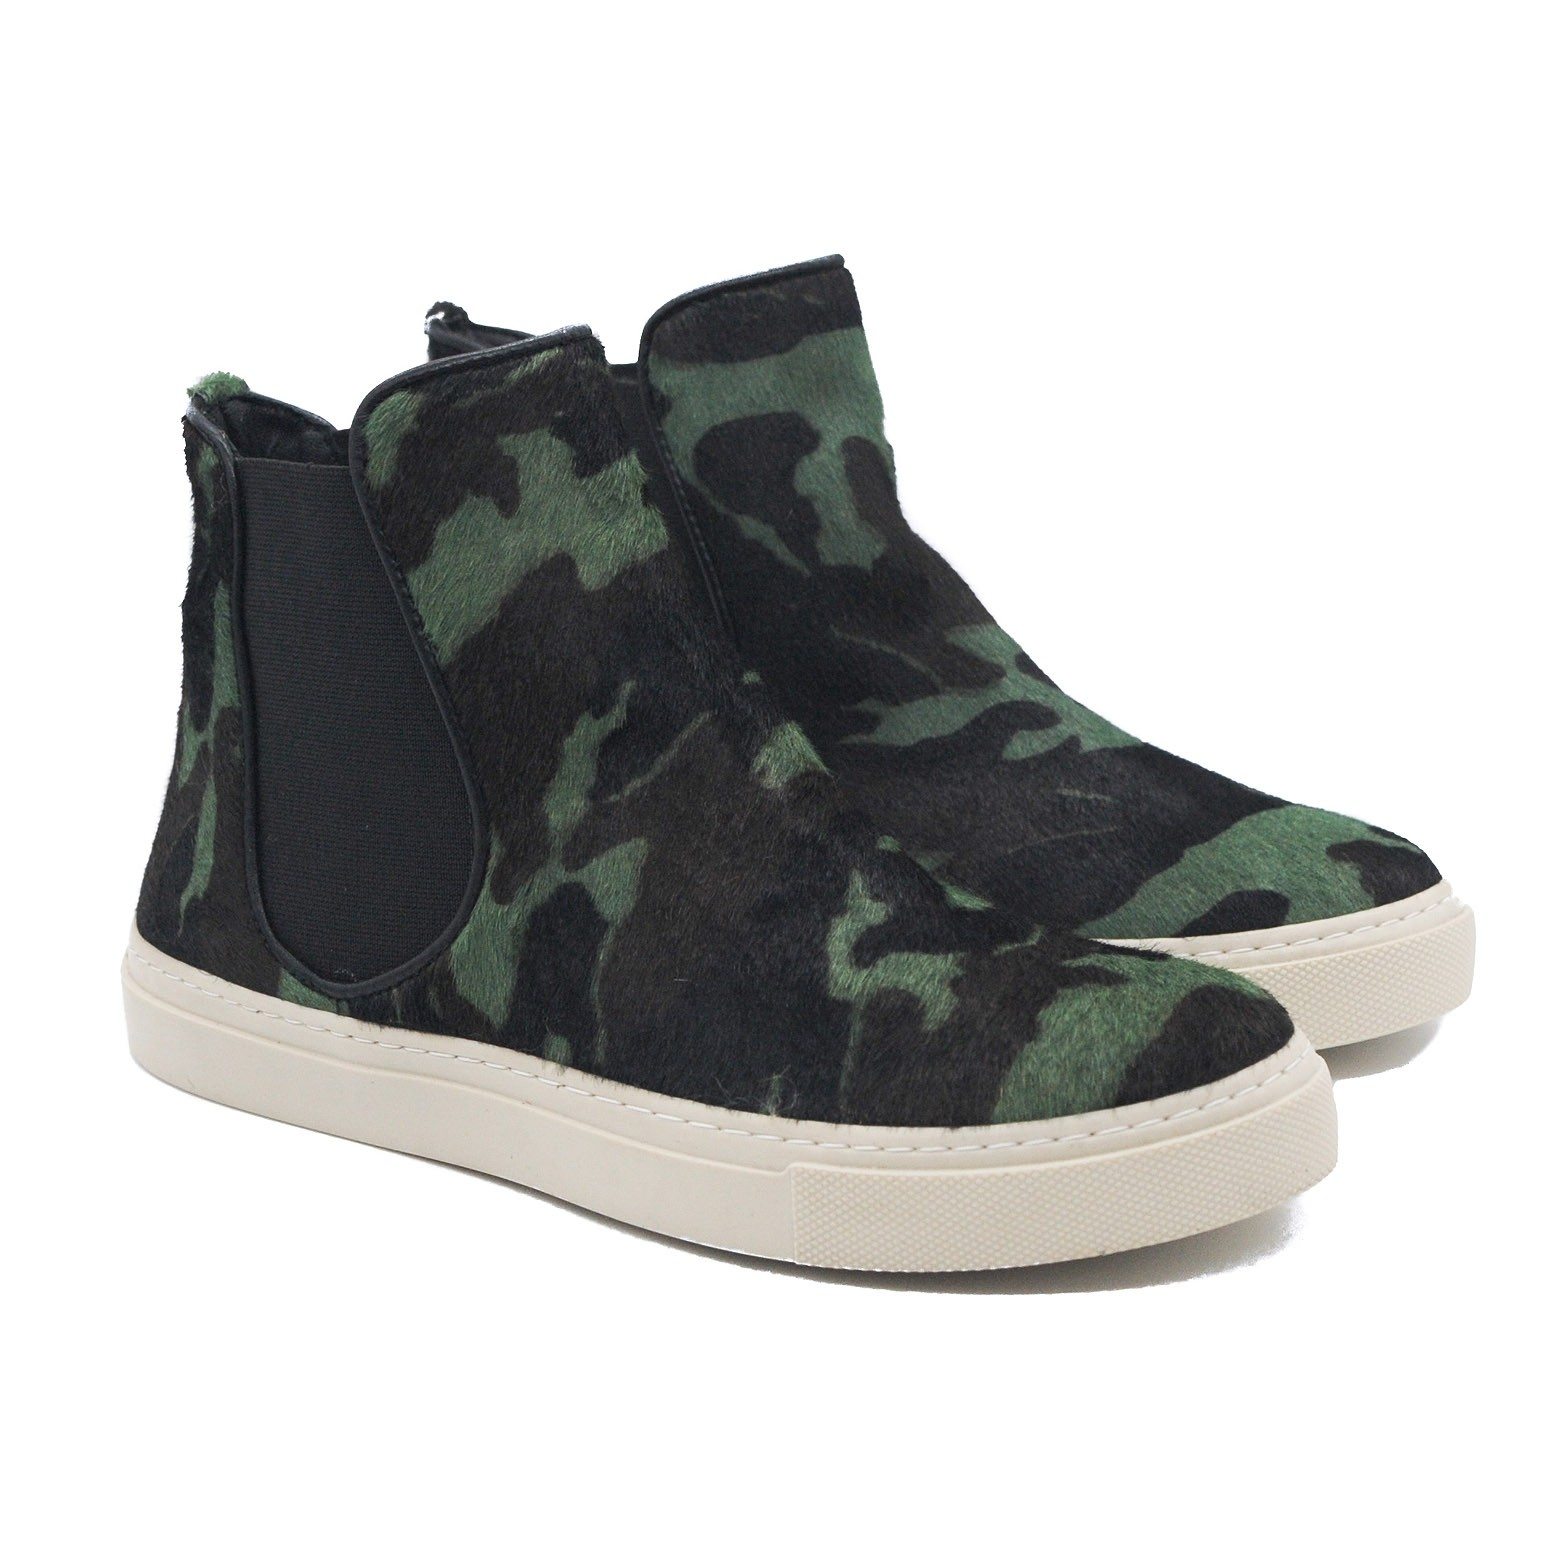 Pegia High Skater Style Boot Pumps in Green and Black for Ladies